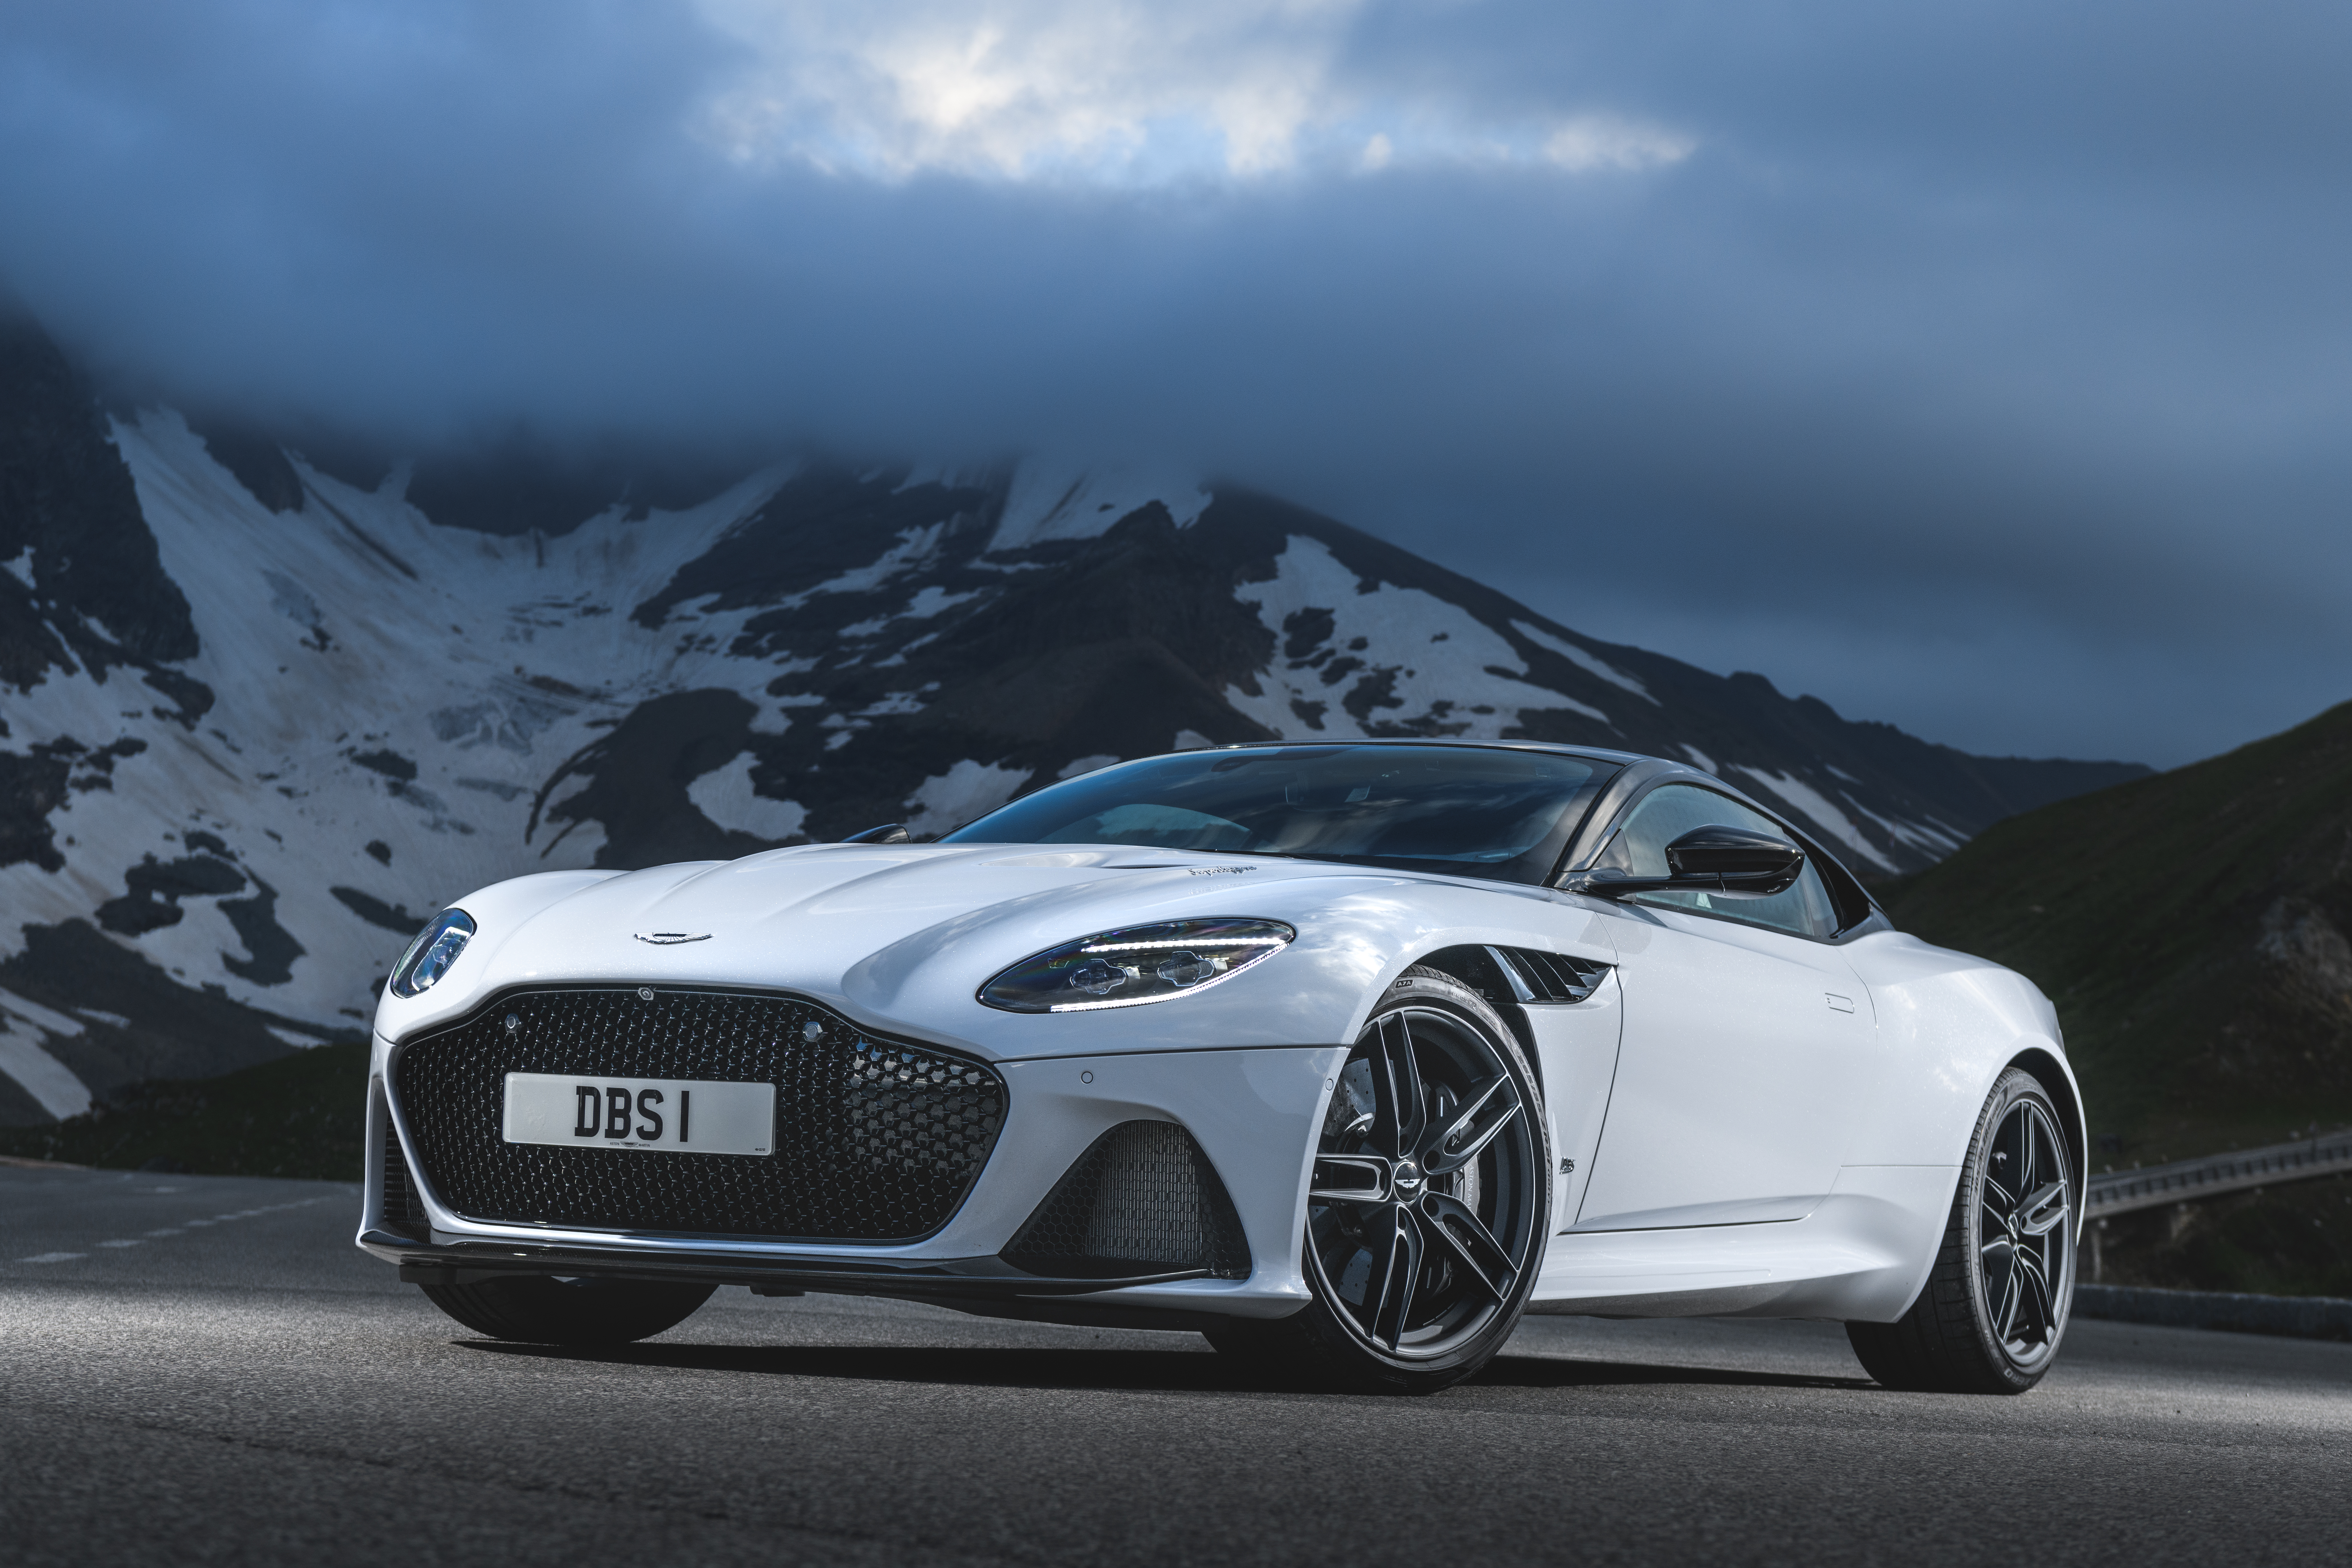 The New Dbs Superleggera Two Illustrious Name For One Magnificent Super Gt Theauto Eu